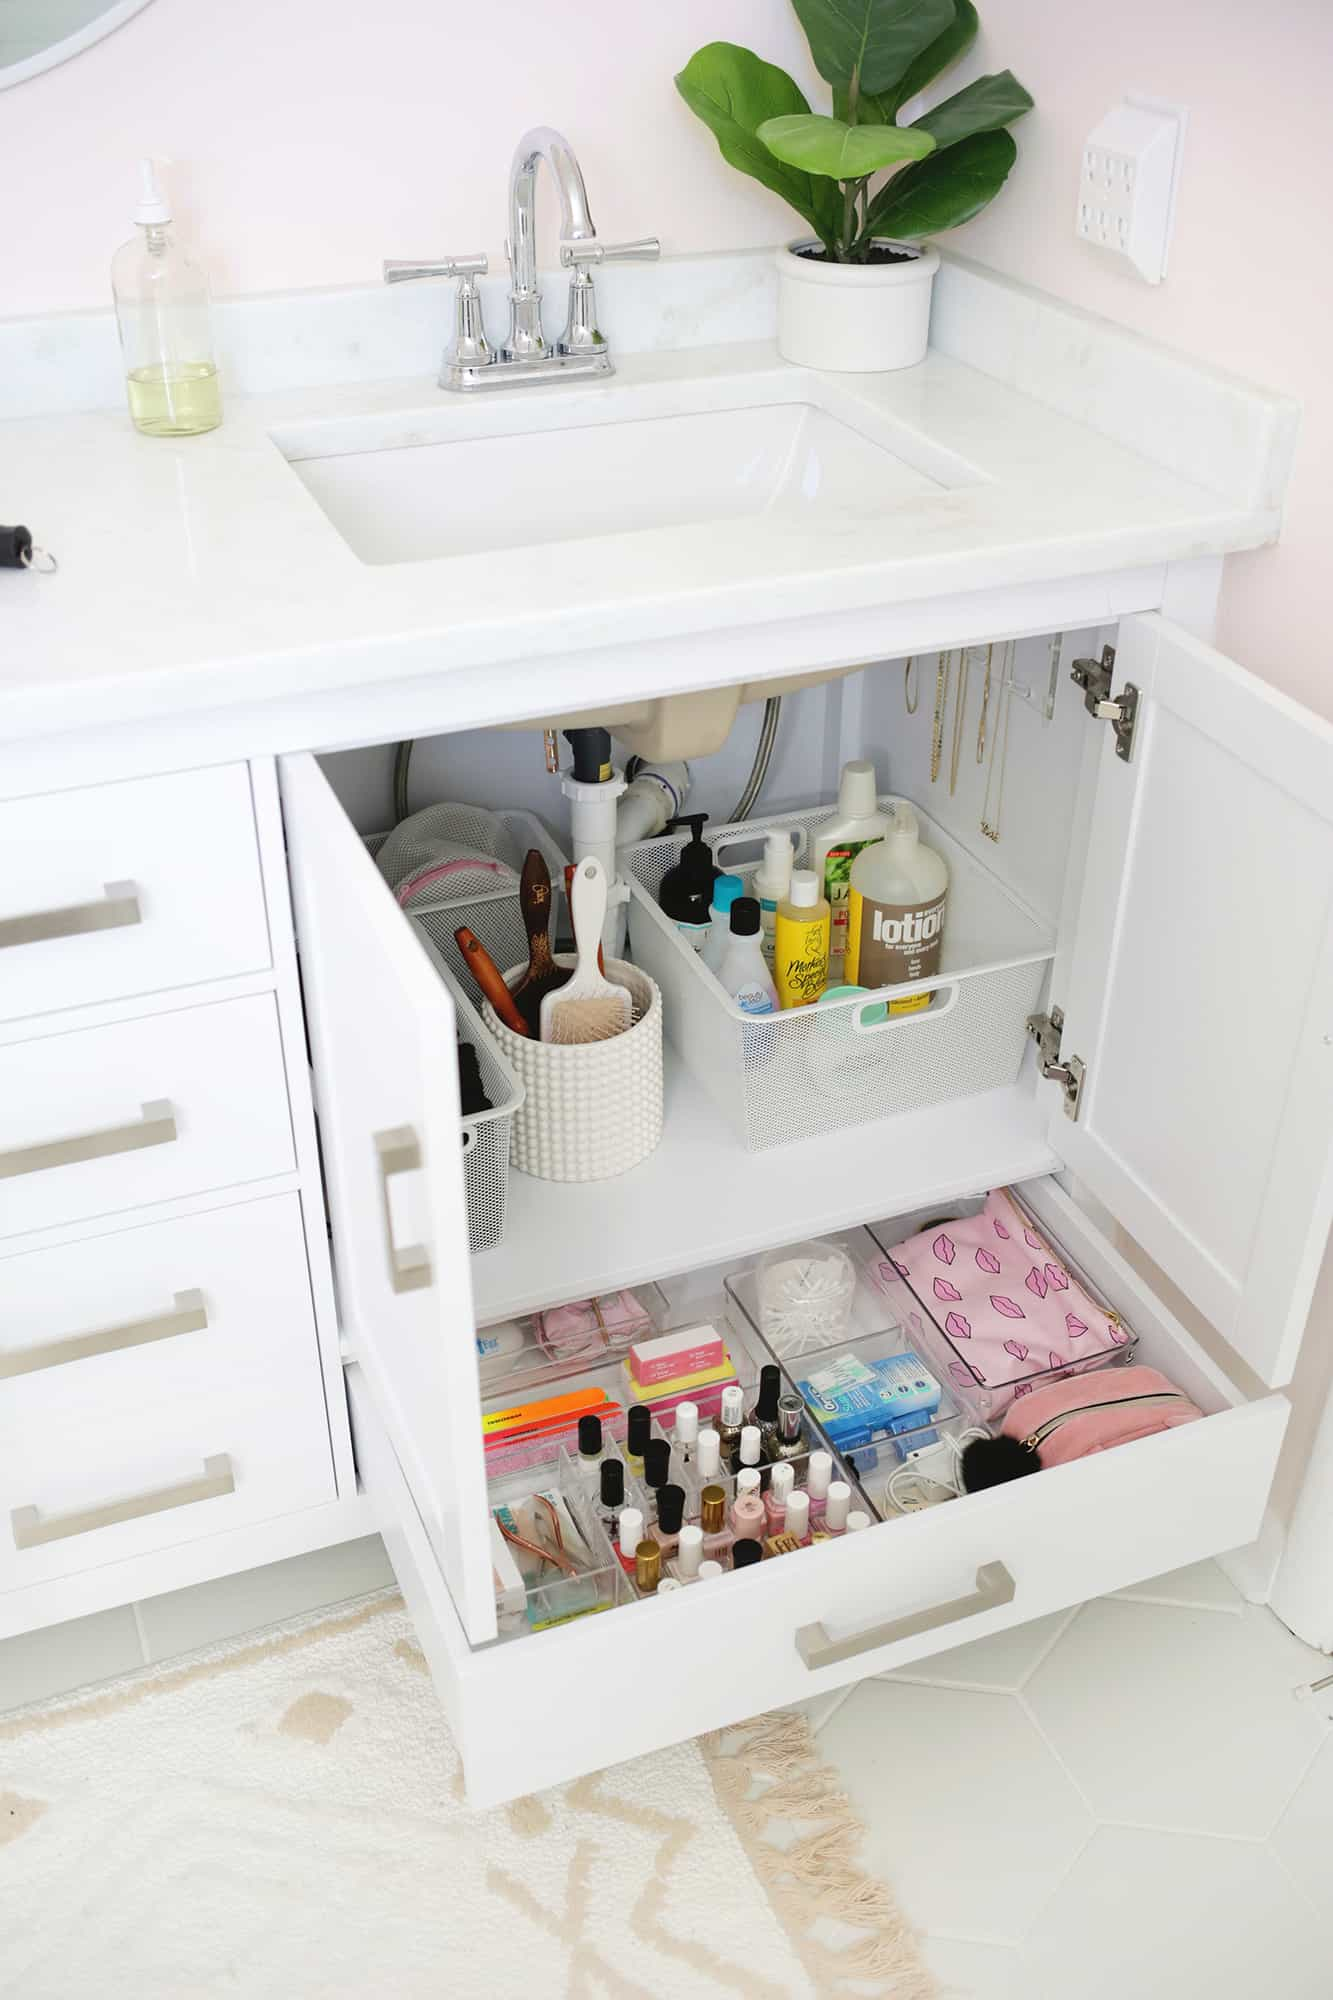 5 Bathroom Storage Mistakes And How To